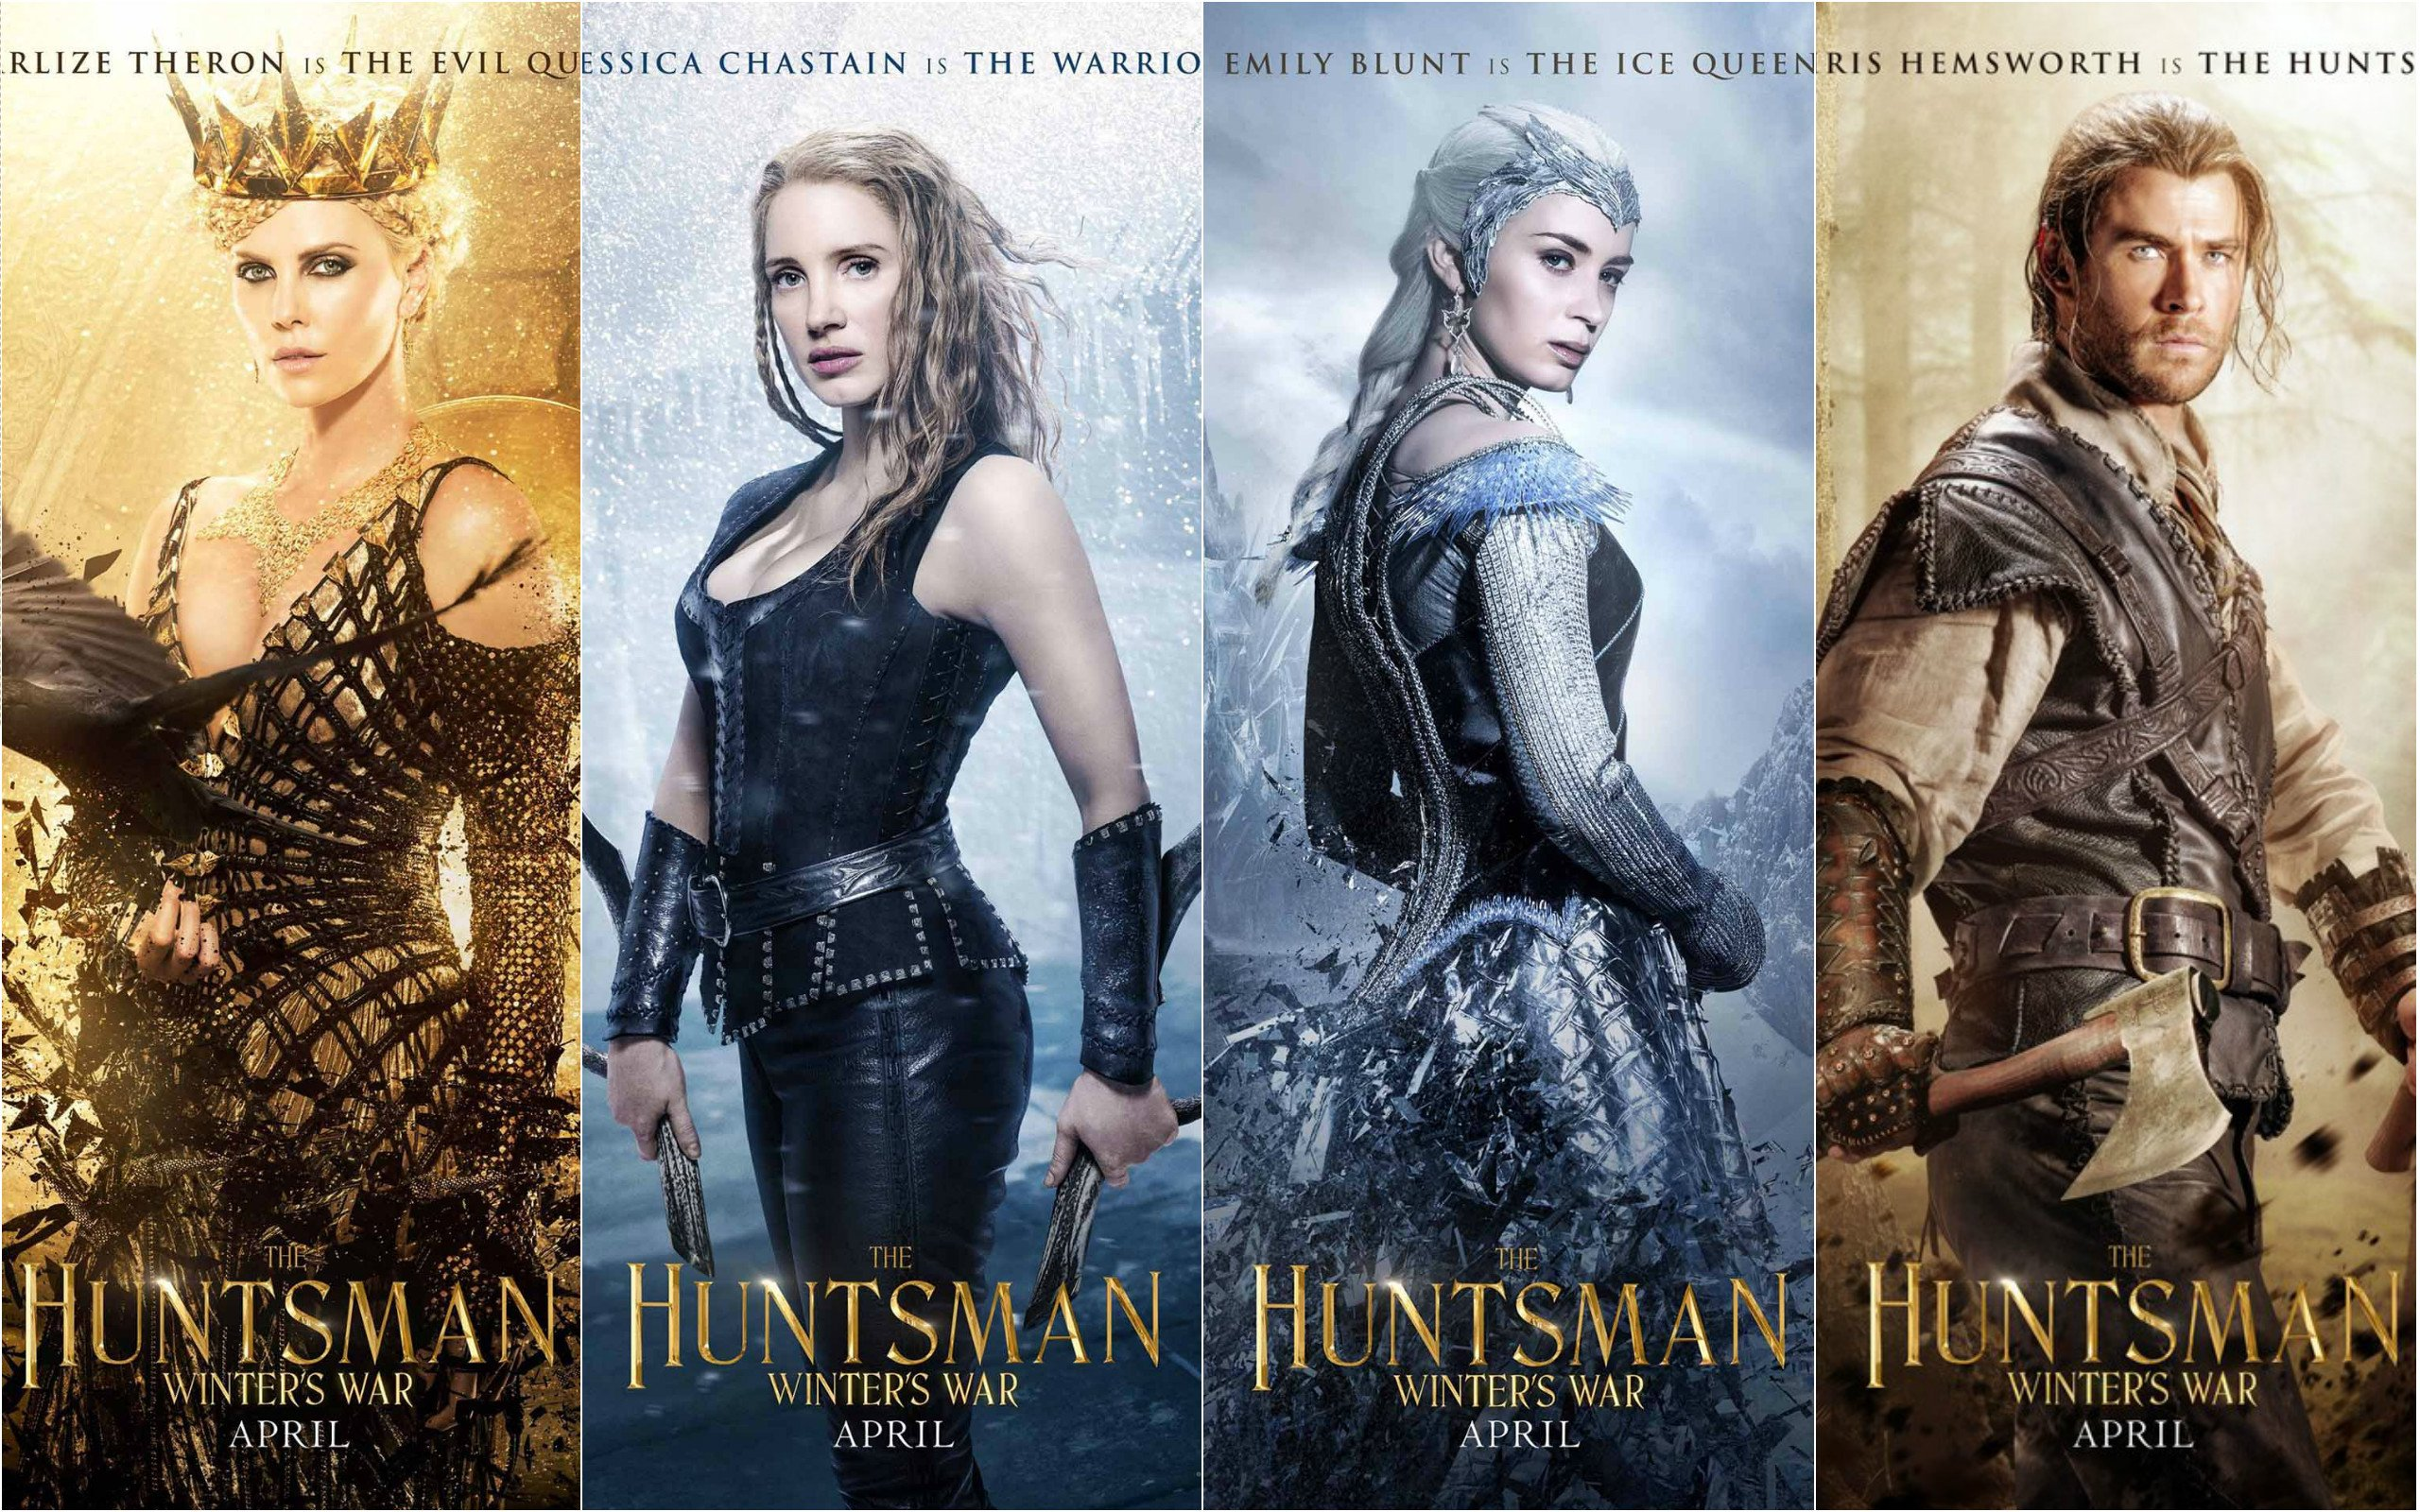 the-huntsman-winters-war-7